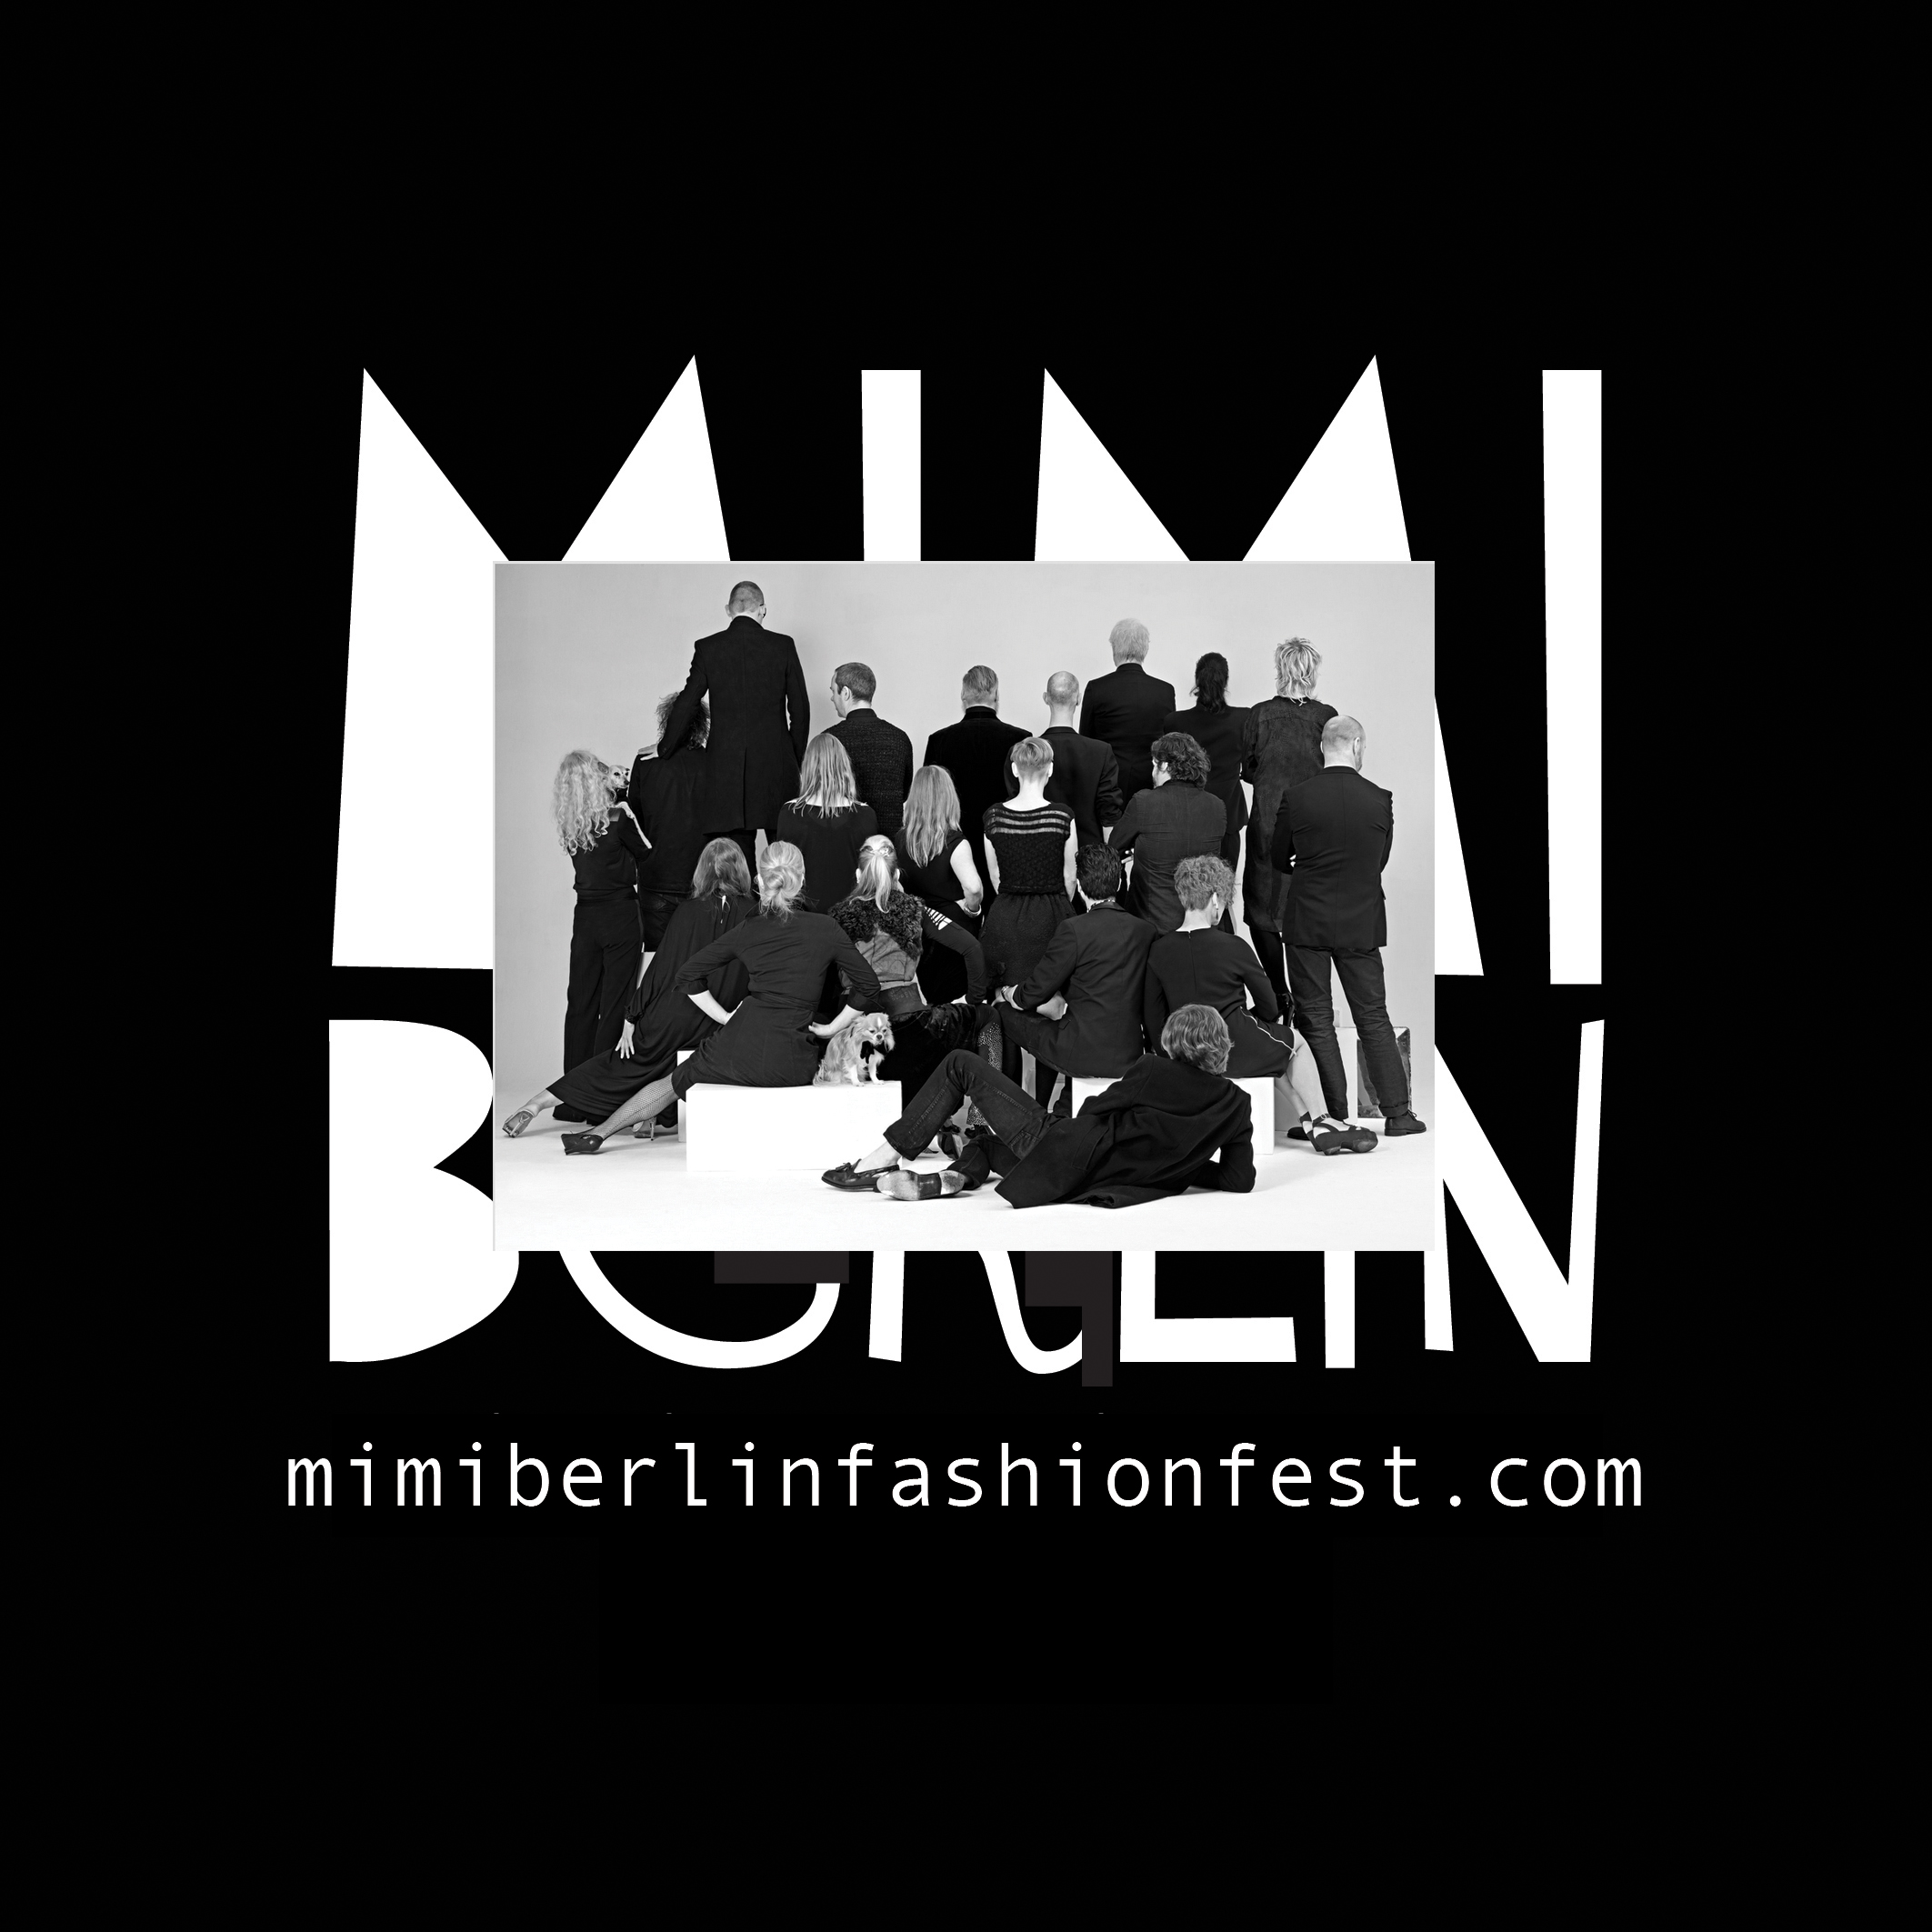 mimiberlinfashionfest.com